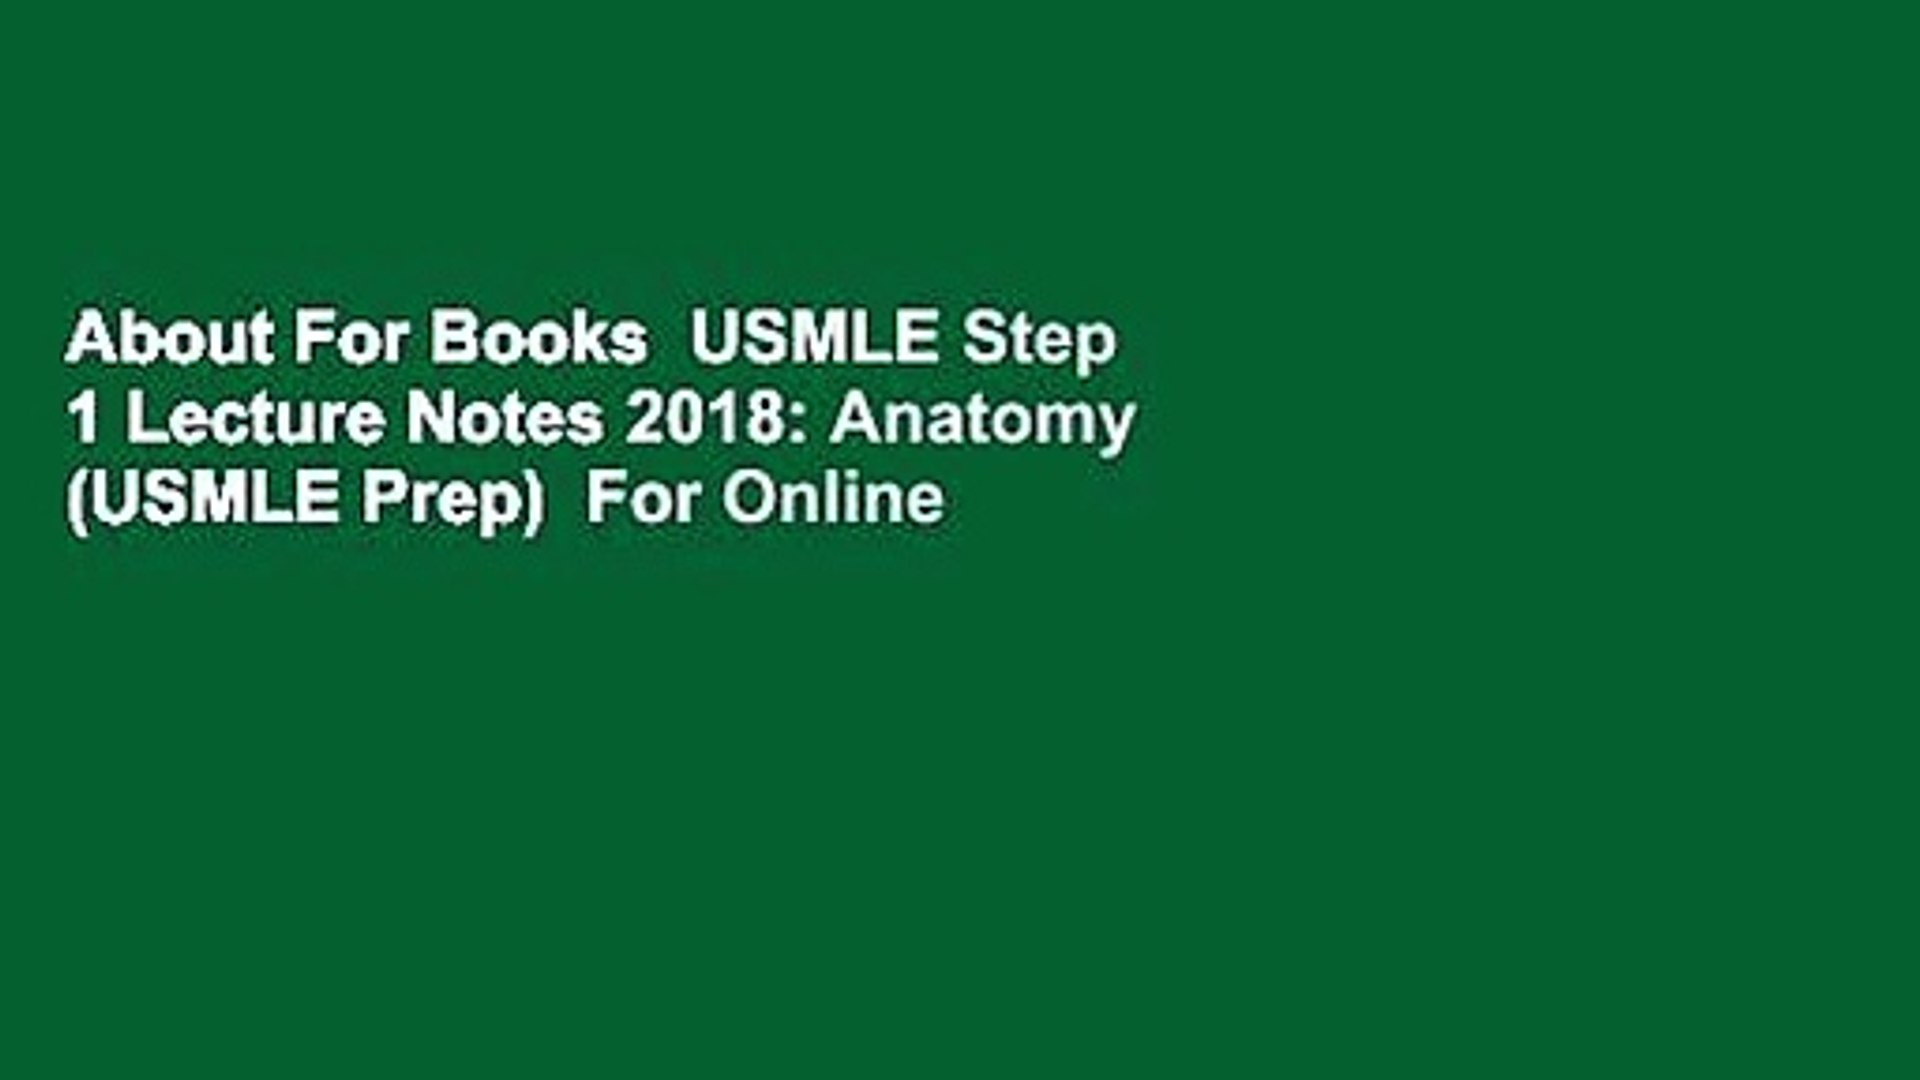 About For Books USMLE Step 1 Lecture Notes 2018: Anatomy (USMLE Prep) For  Online